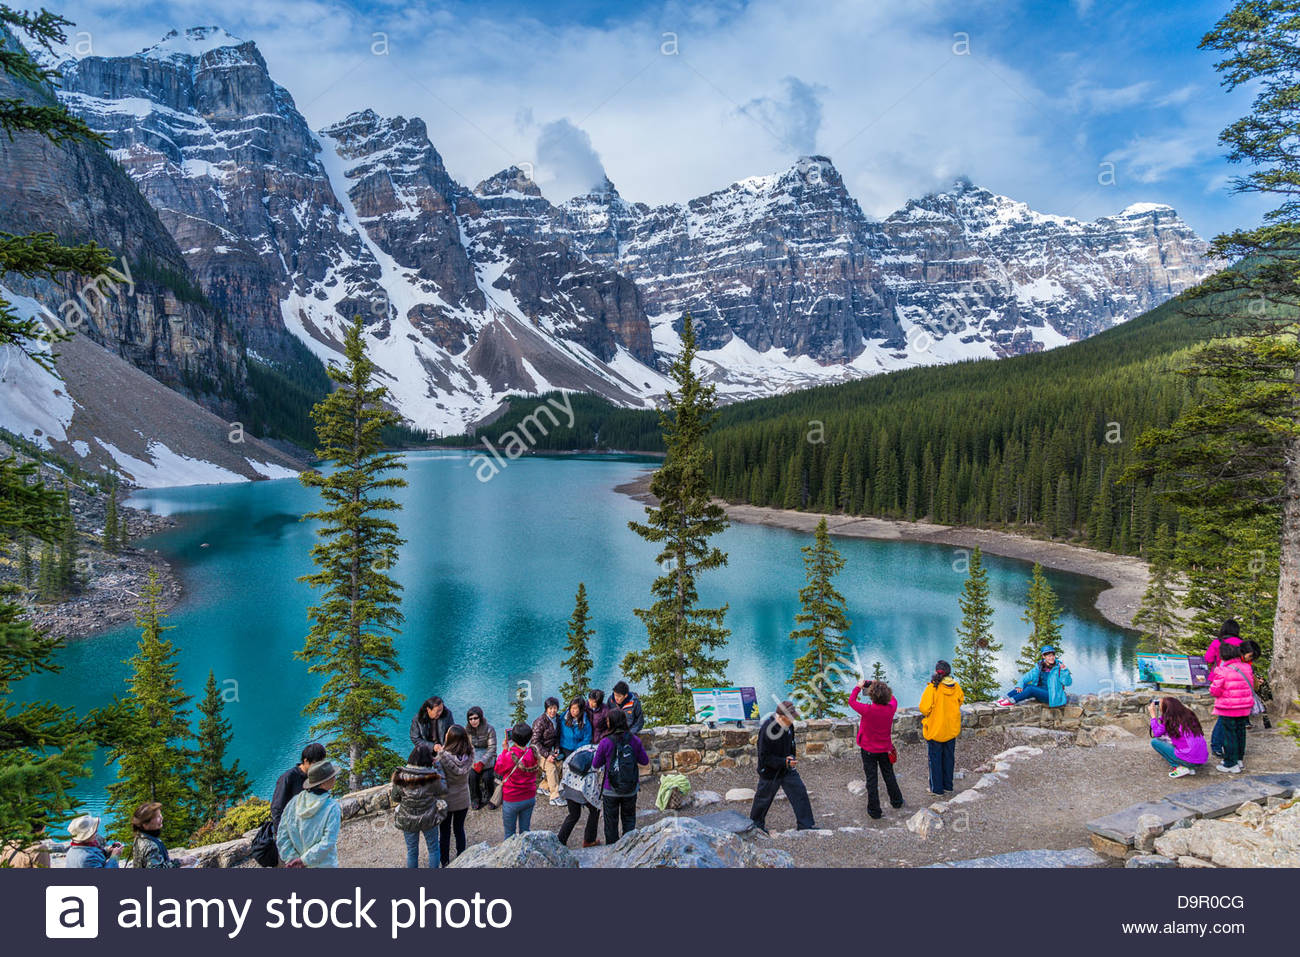 lake louise map google with 352241 on Info niagara likewise Mt Norquay Opening Day as well Maligne Lake likewise El Paso Texas Location On Map furthermore 676645.